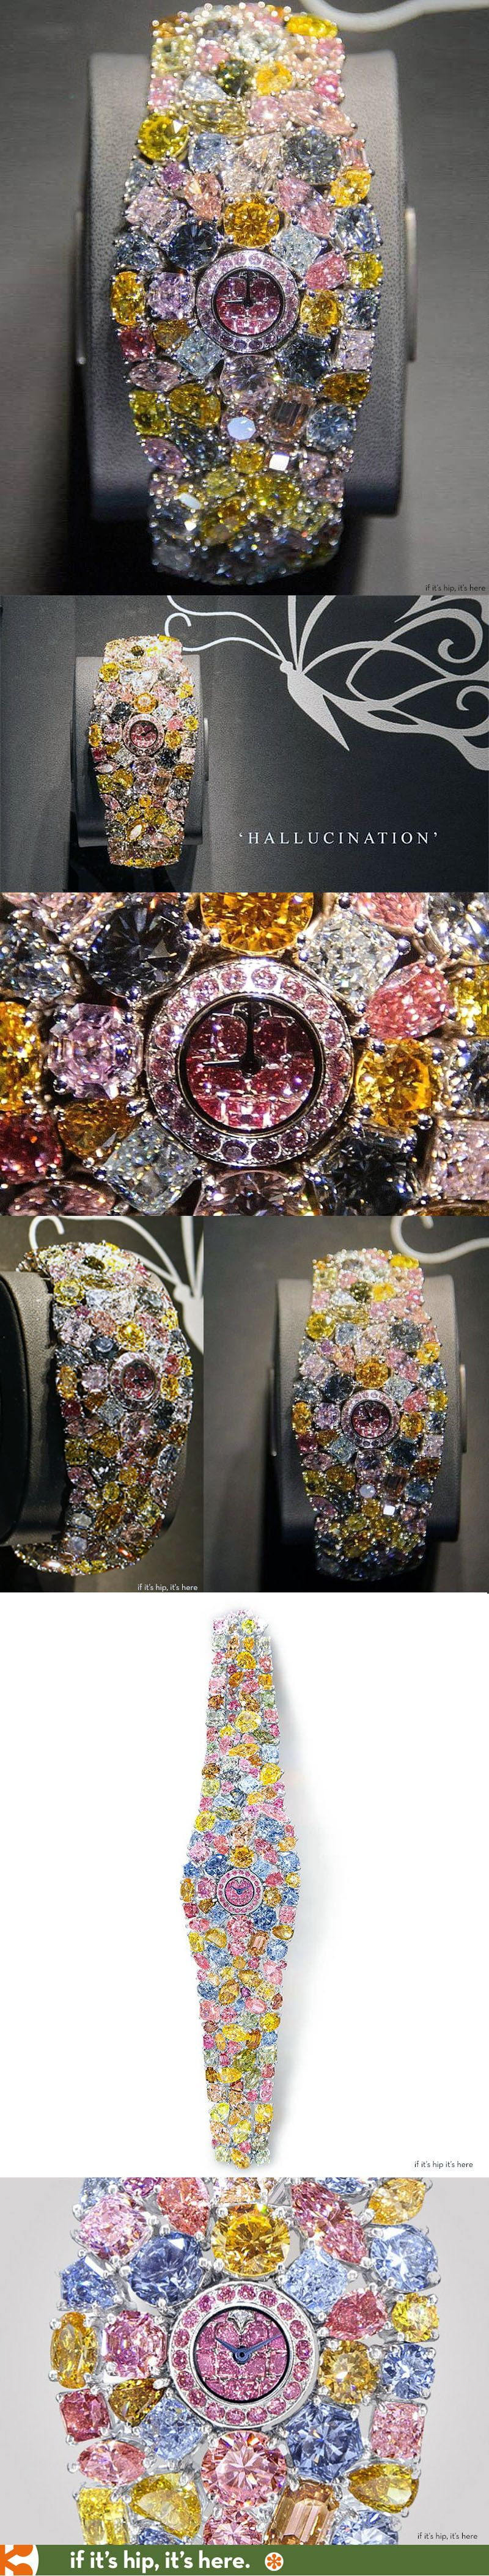 The world's most expensive watch The Graff Hallucination